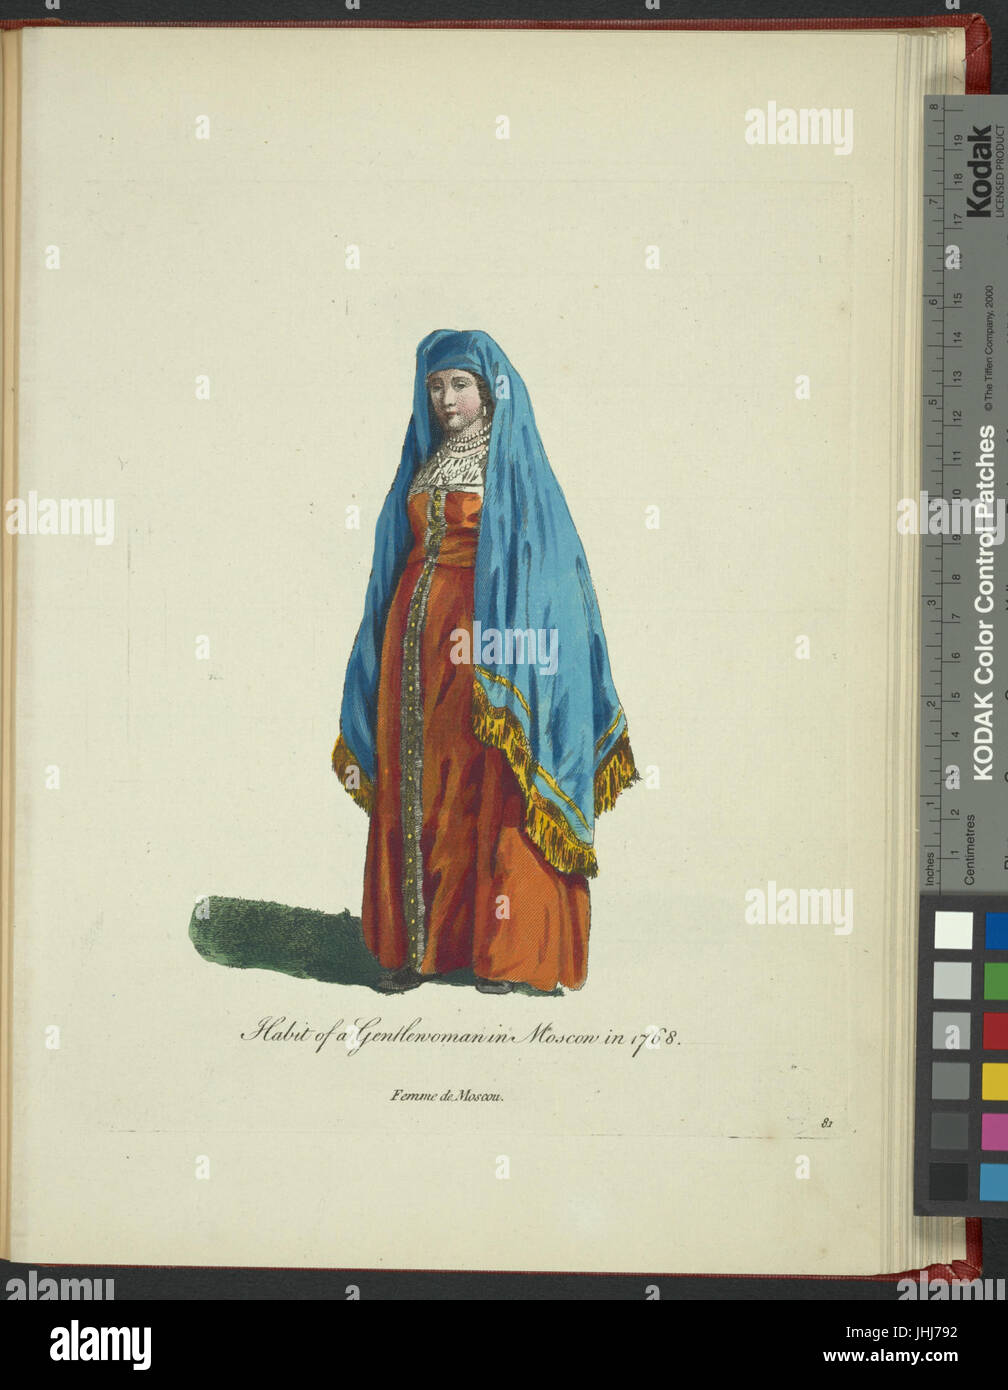 Habit of a gentlewoman in Moscow in 1768. Femme de Moscou (NYPL b14140320-